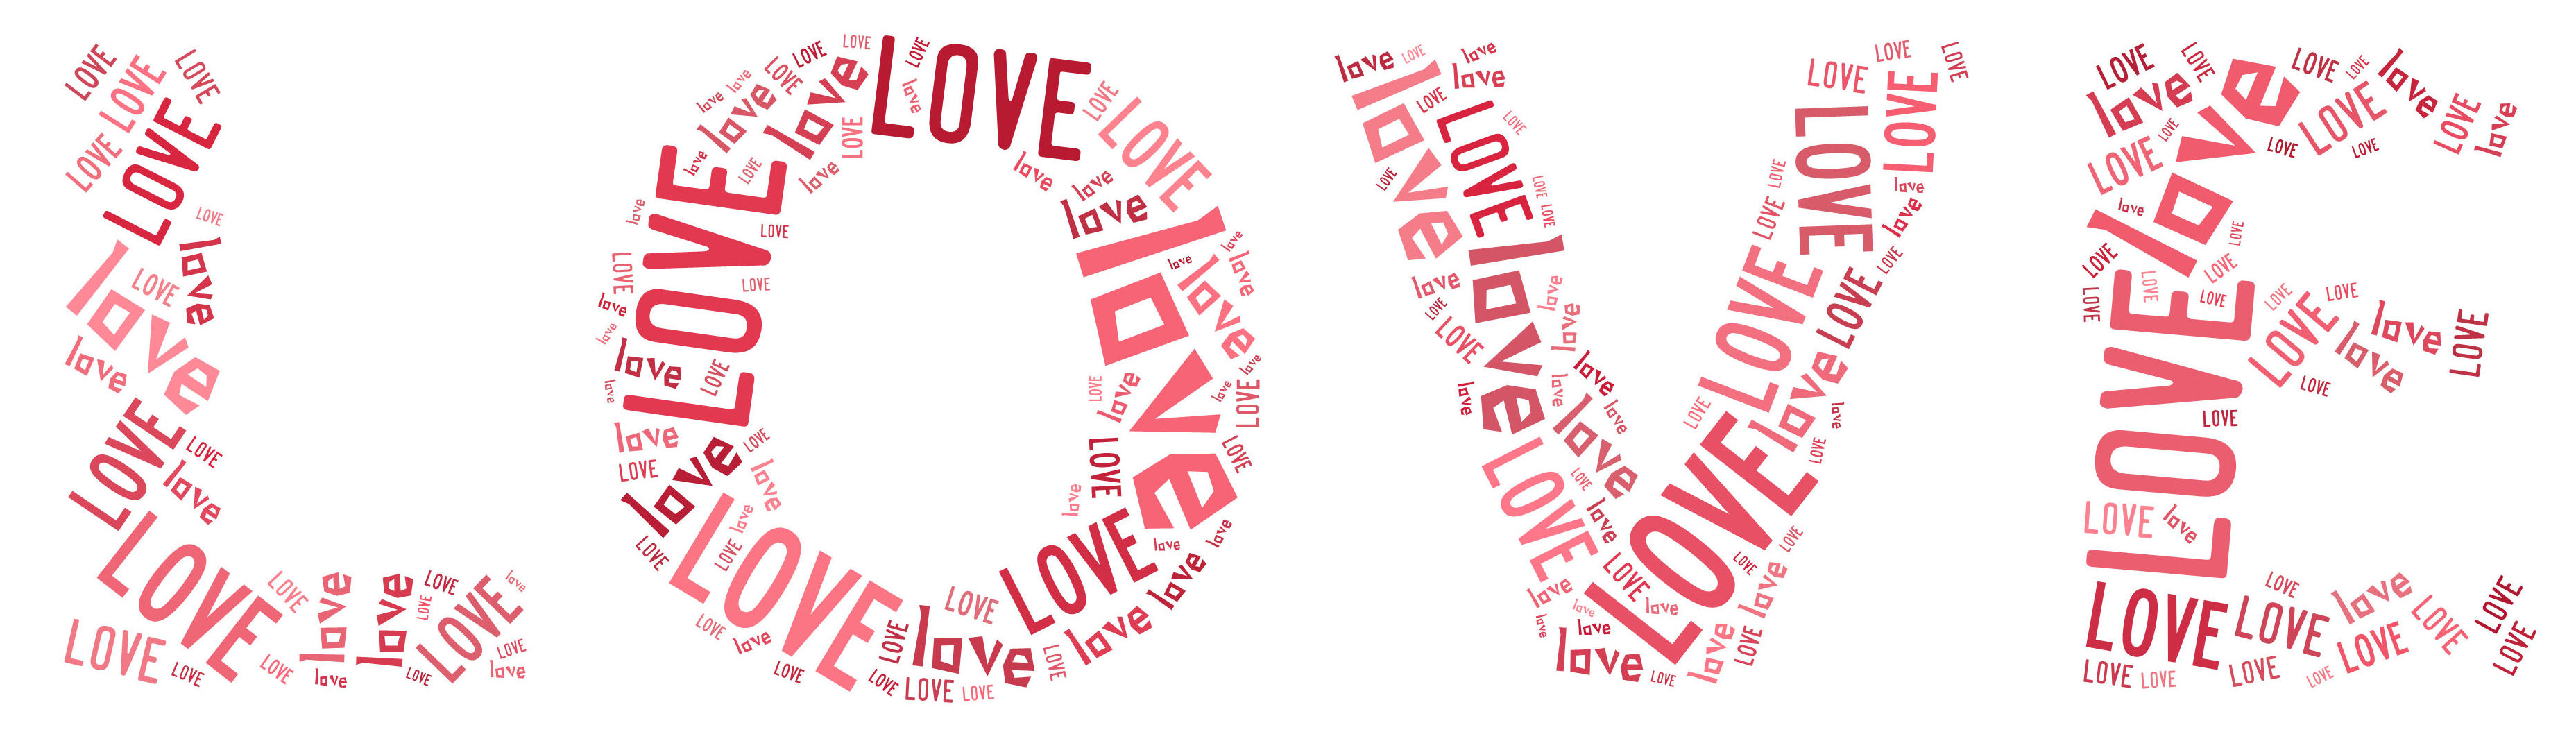 Free Shaped Word Art Online The Valentines Day Edition Come Learn About A Fantastic